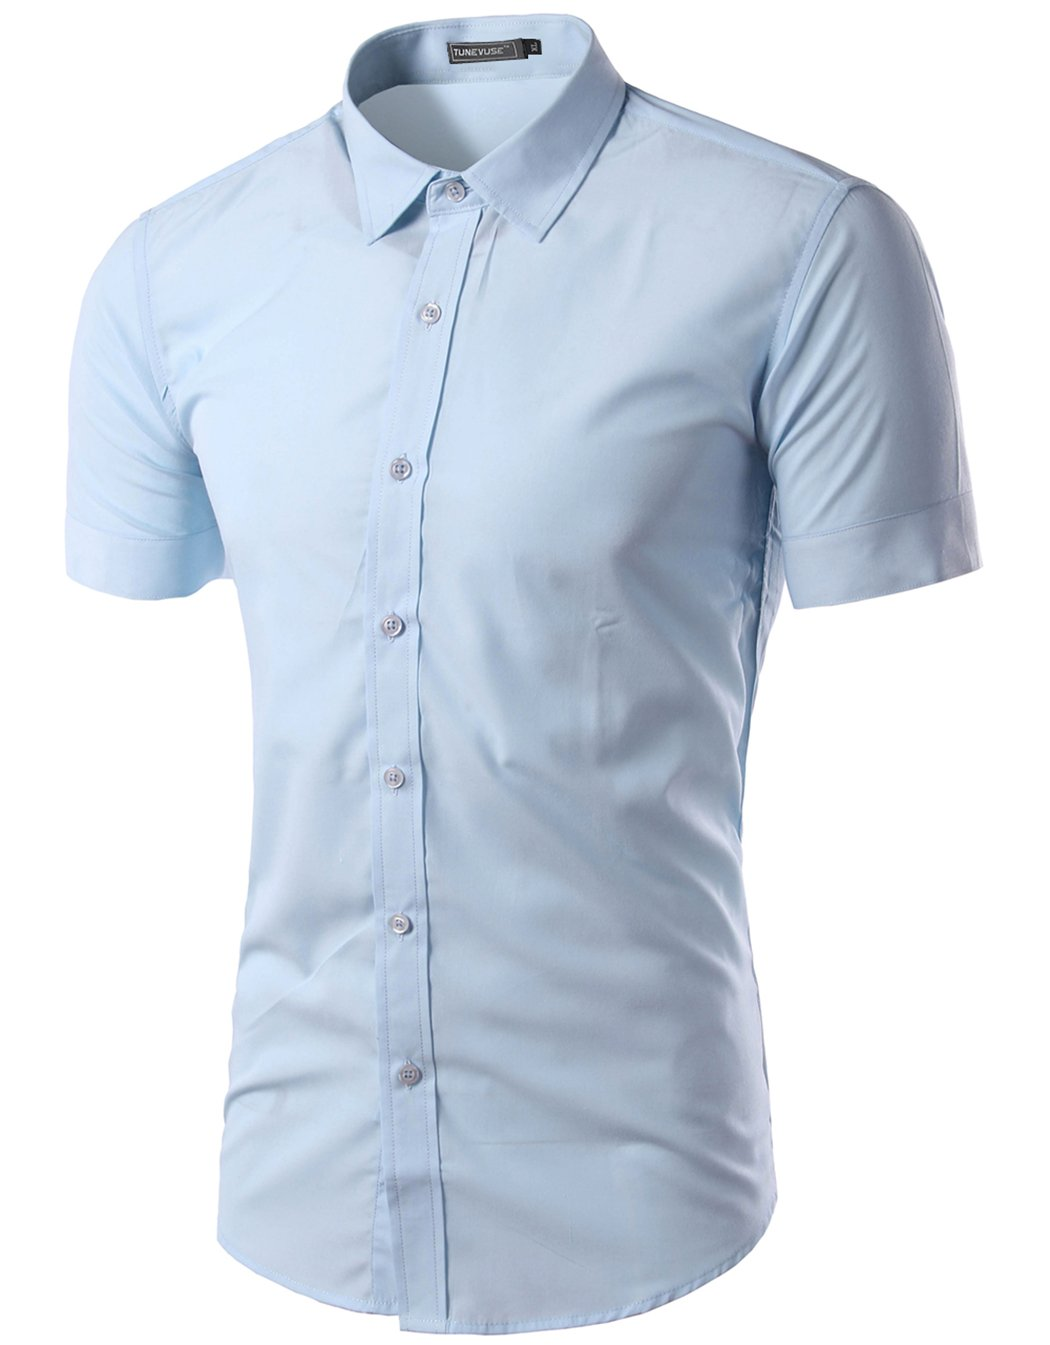 Mada Mens Casual Short Sleeve Business Dress Shirt Solid Slim Fit Shirt, Light Blue, Asian X-Large/US Small